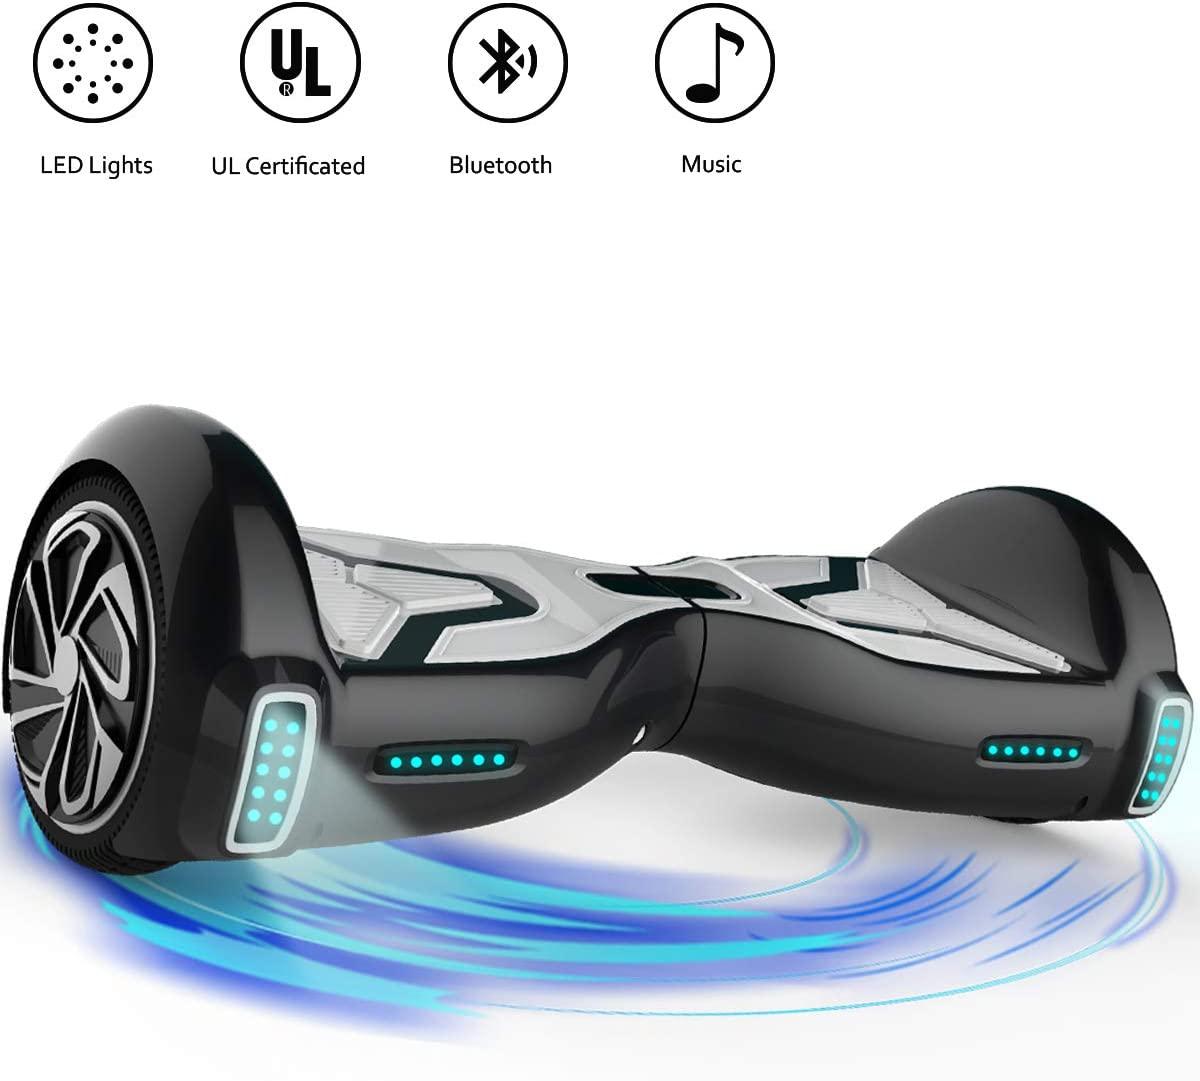 TOMOLOO Hoverboard for Kids and Adult, 6.5 Two Wheels App Controlled Electric Self Balancing Scooter UL2272 Certified